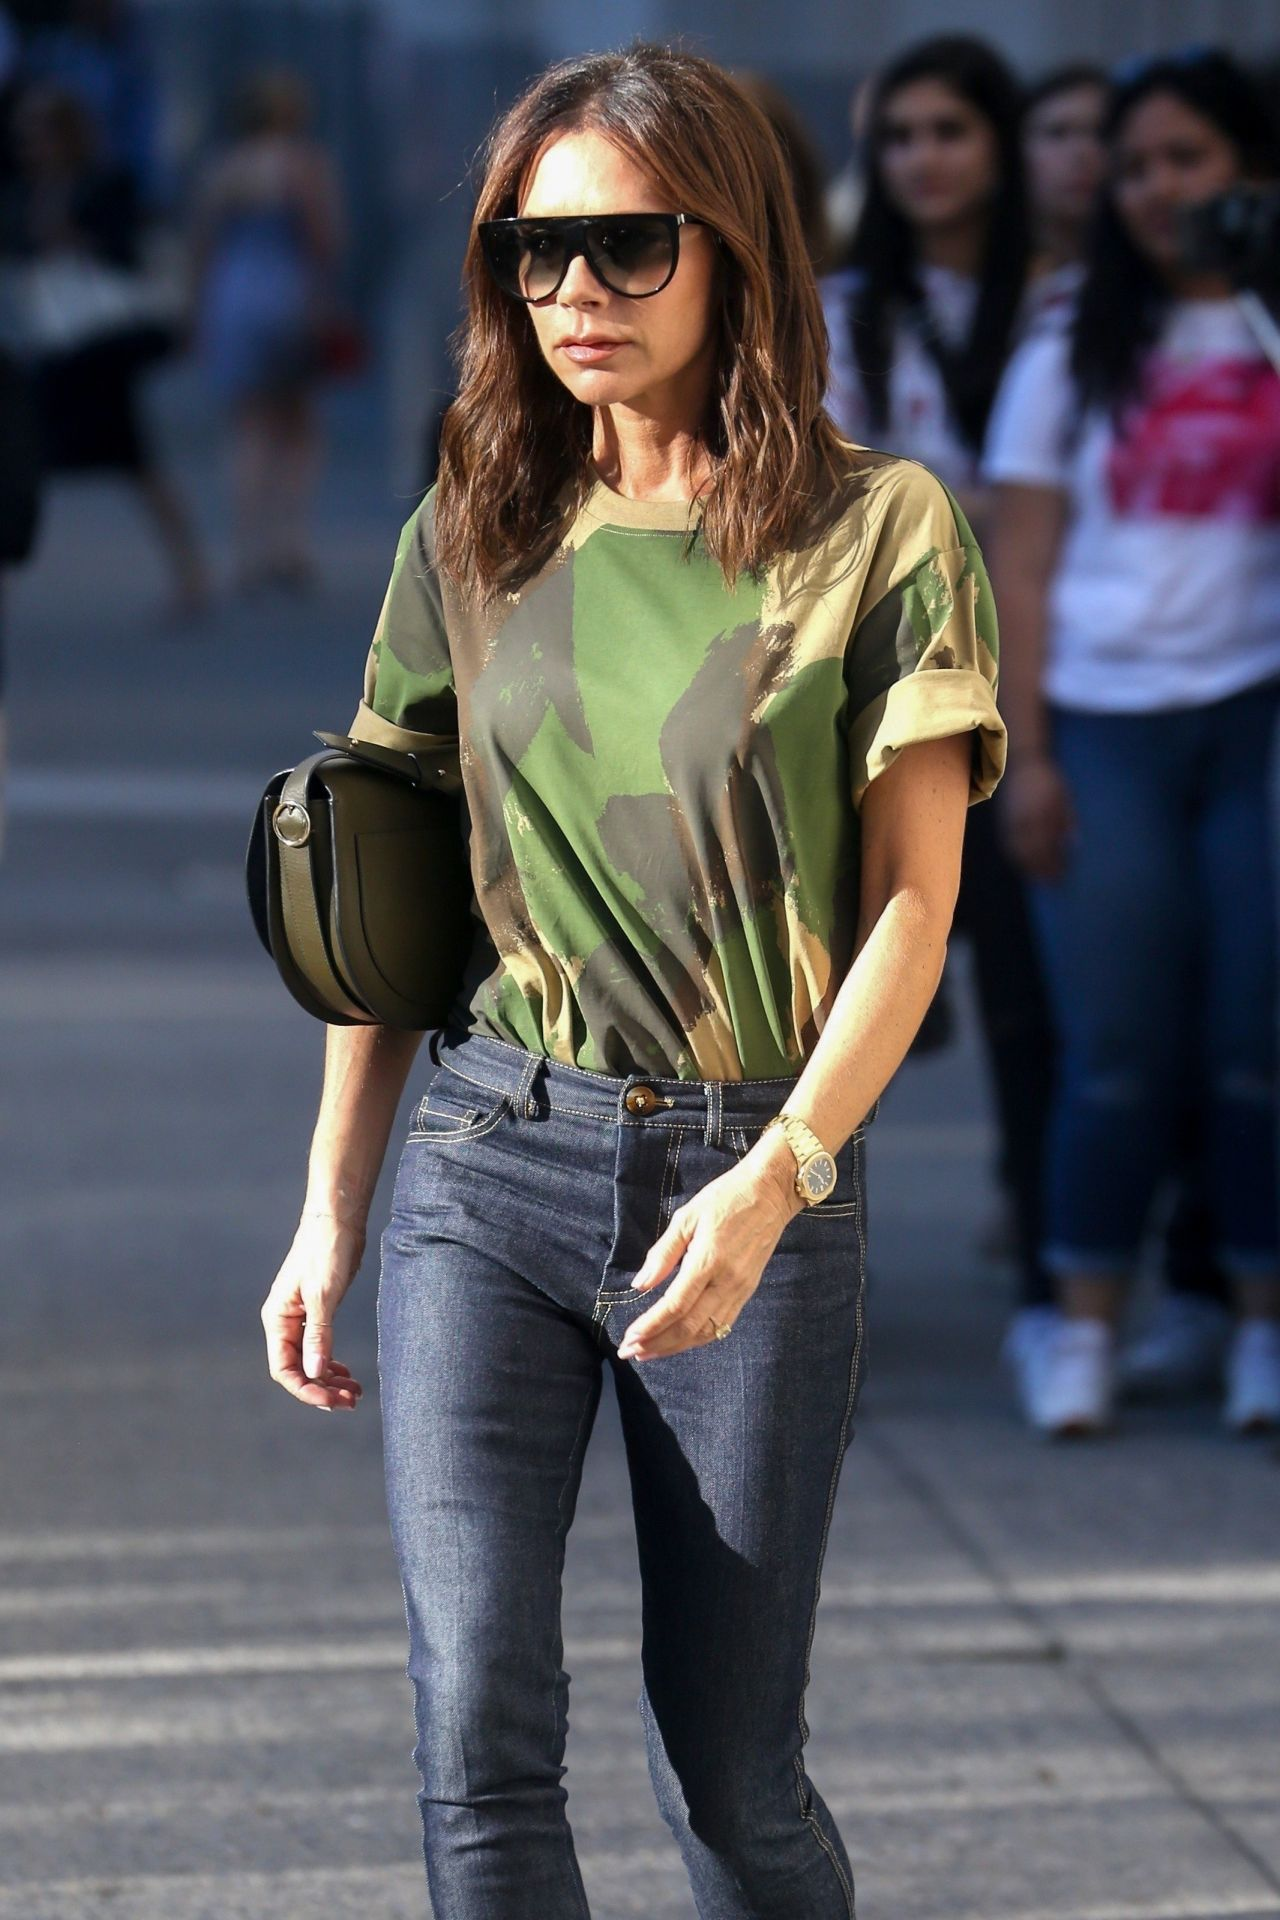 Victoria Beckham Casual Style - Leaving Her Hotel in New ... Victoria Beckham